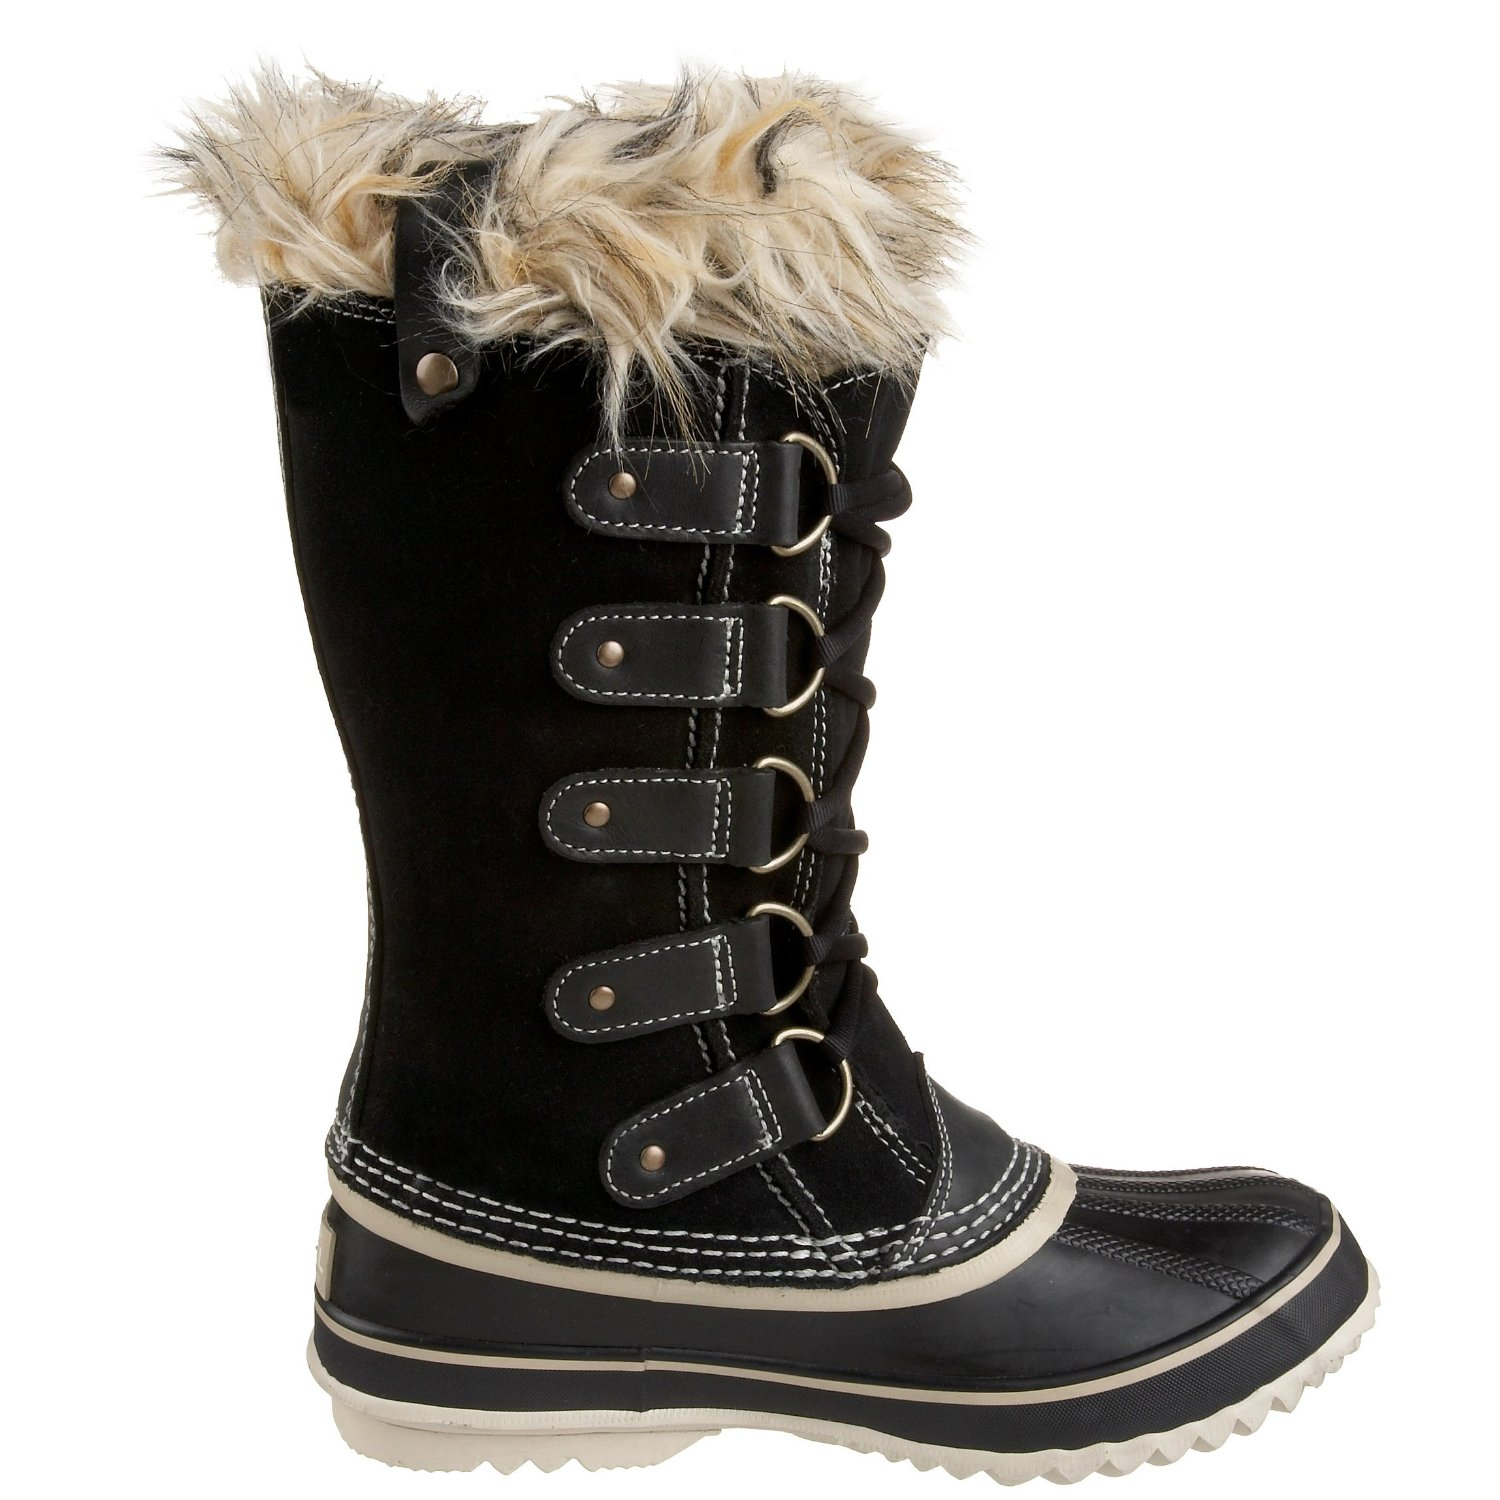 Most Popular Snow Boots | Fashion Boots